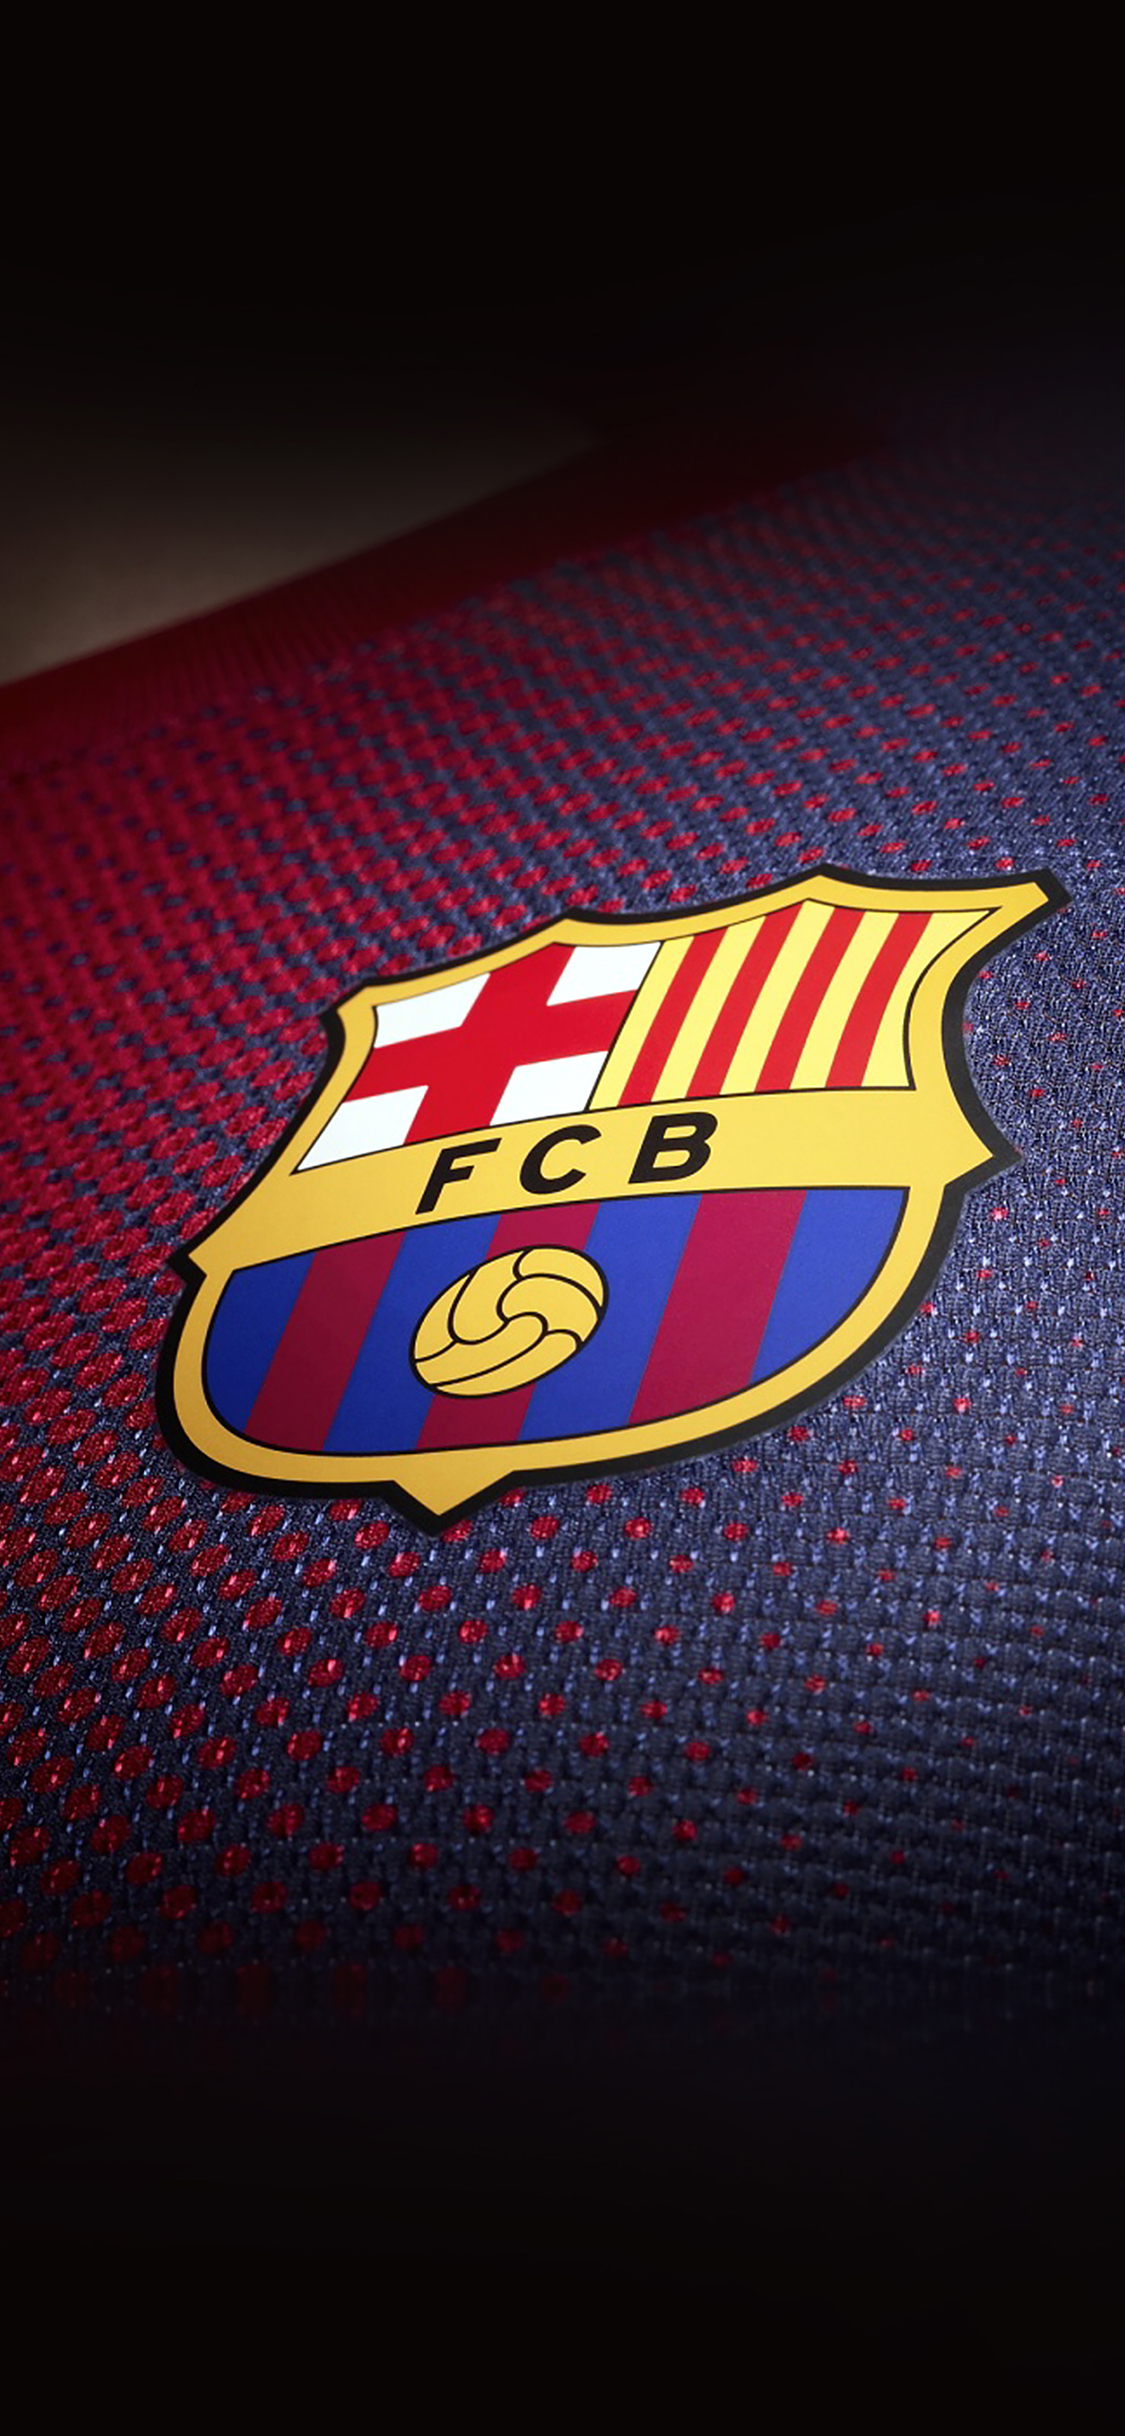 Iphonepapers Ac37 Wallpaper Barcelona Logo Emblem Sports